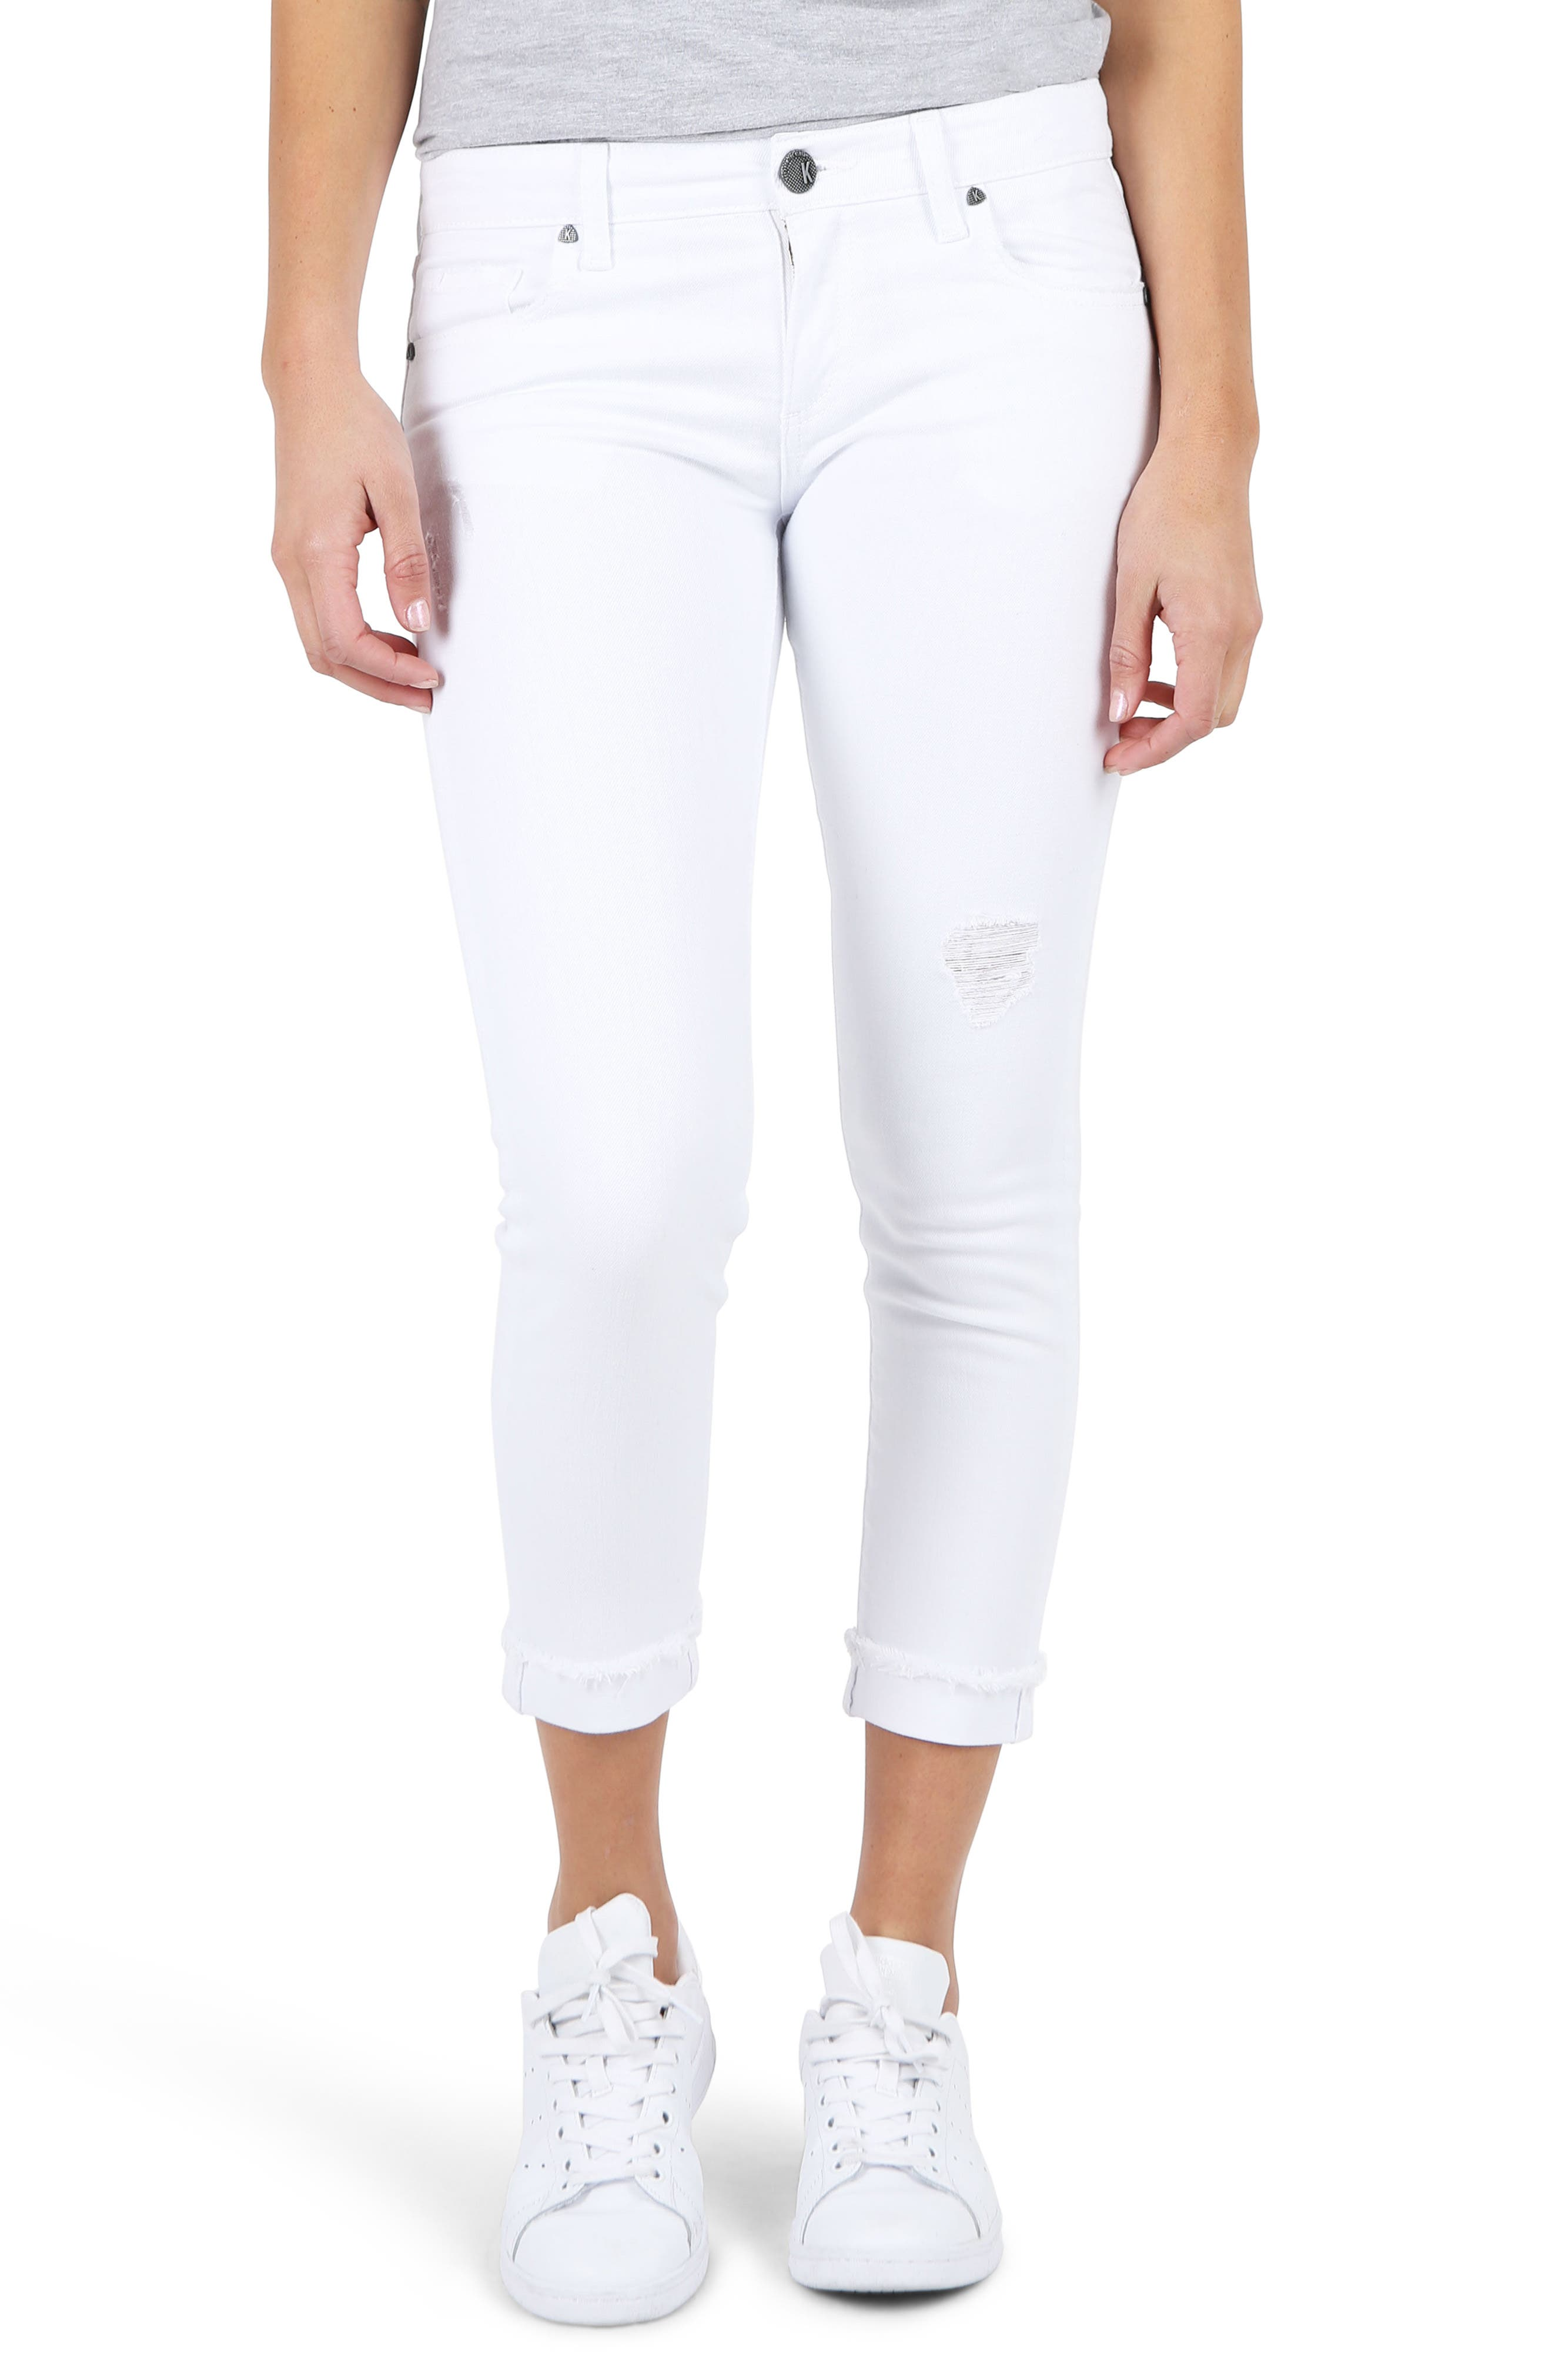 KUT Kollection Amy Crop White Jeans,                             Main thumbnail 1, color,                             Optical White